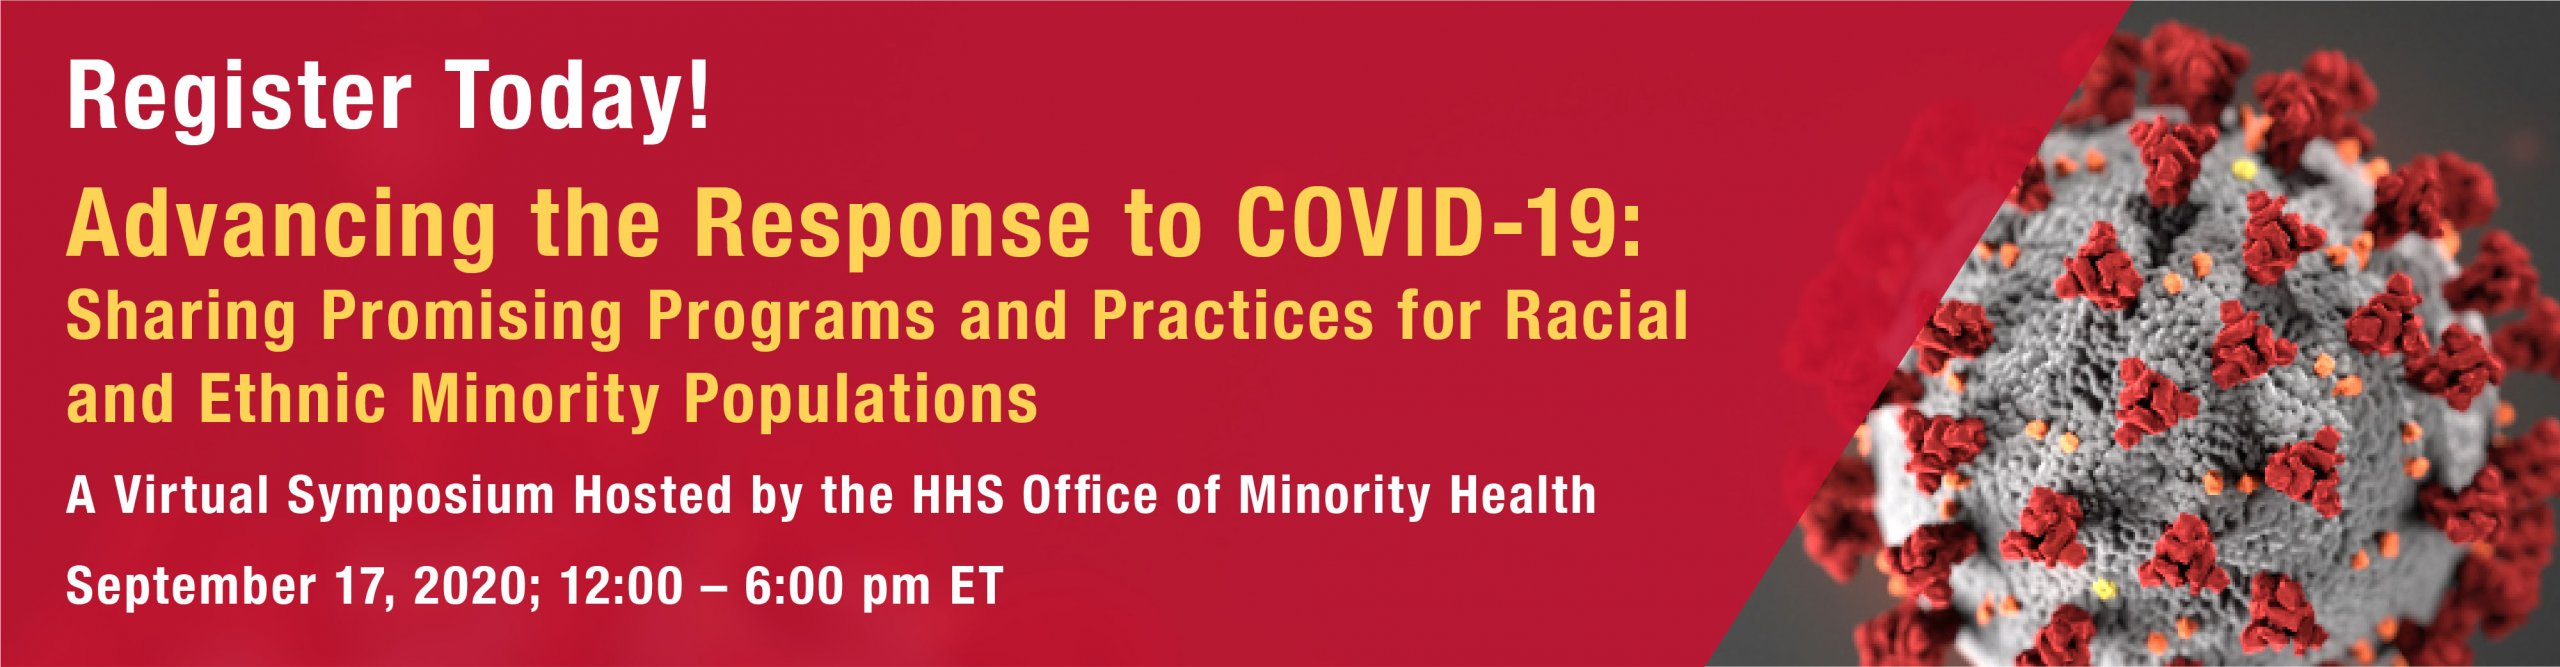 Virtual Symposium: Advancing the Response to COVID-19: Sharing Promising Programs and Practices for Racial and Ethnic Minority Communities